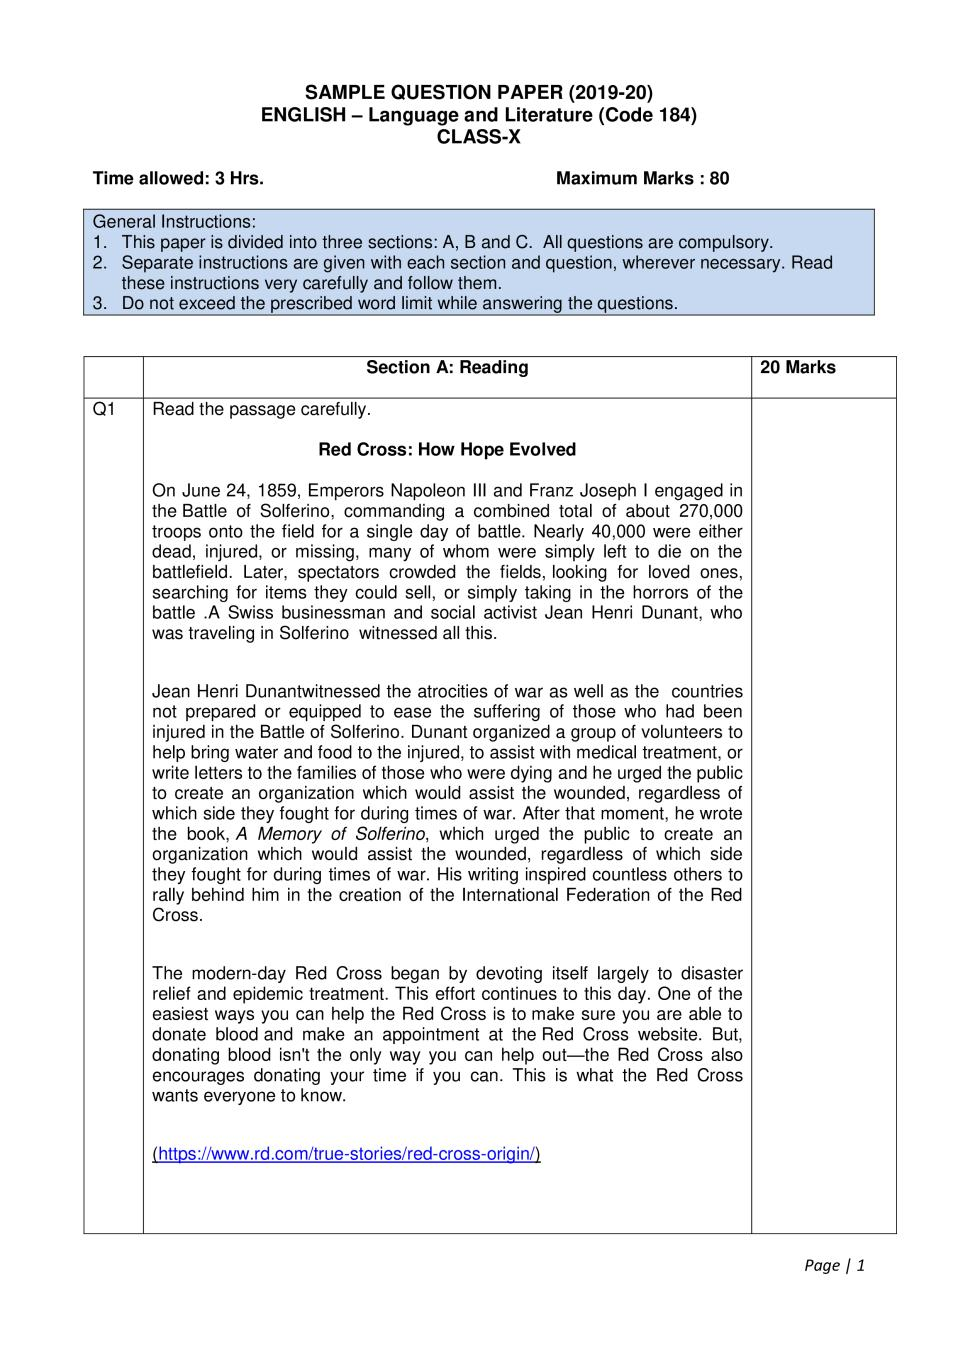 Cbse Sample Papers 2020 For Class 10 English Language And Literature Aglasem Schools Sample Paper Language And Literature Sample Question Paper [ 1355 x 958 Pixel ]